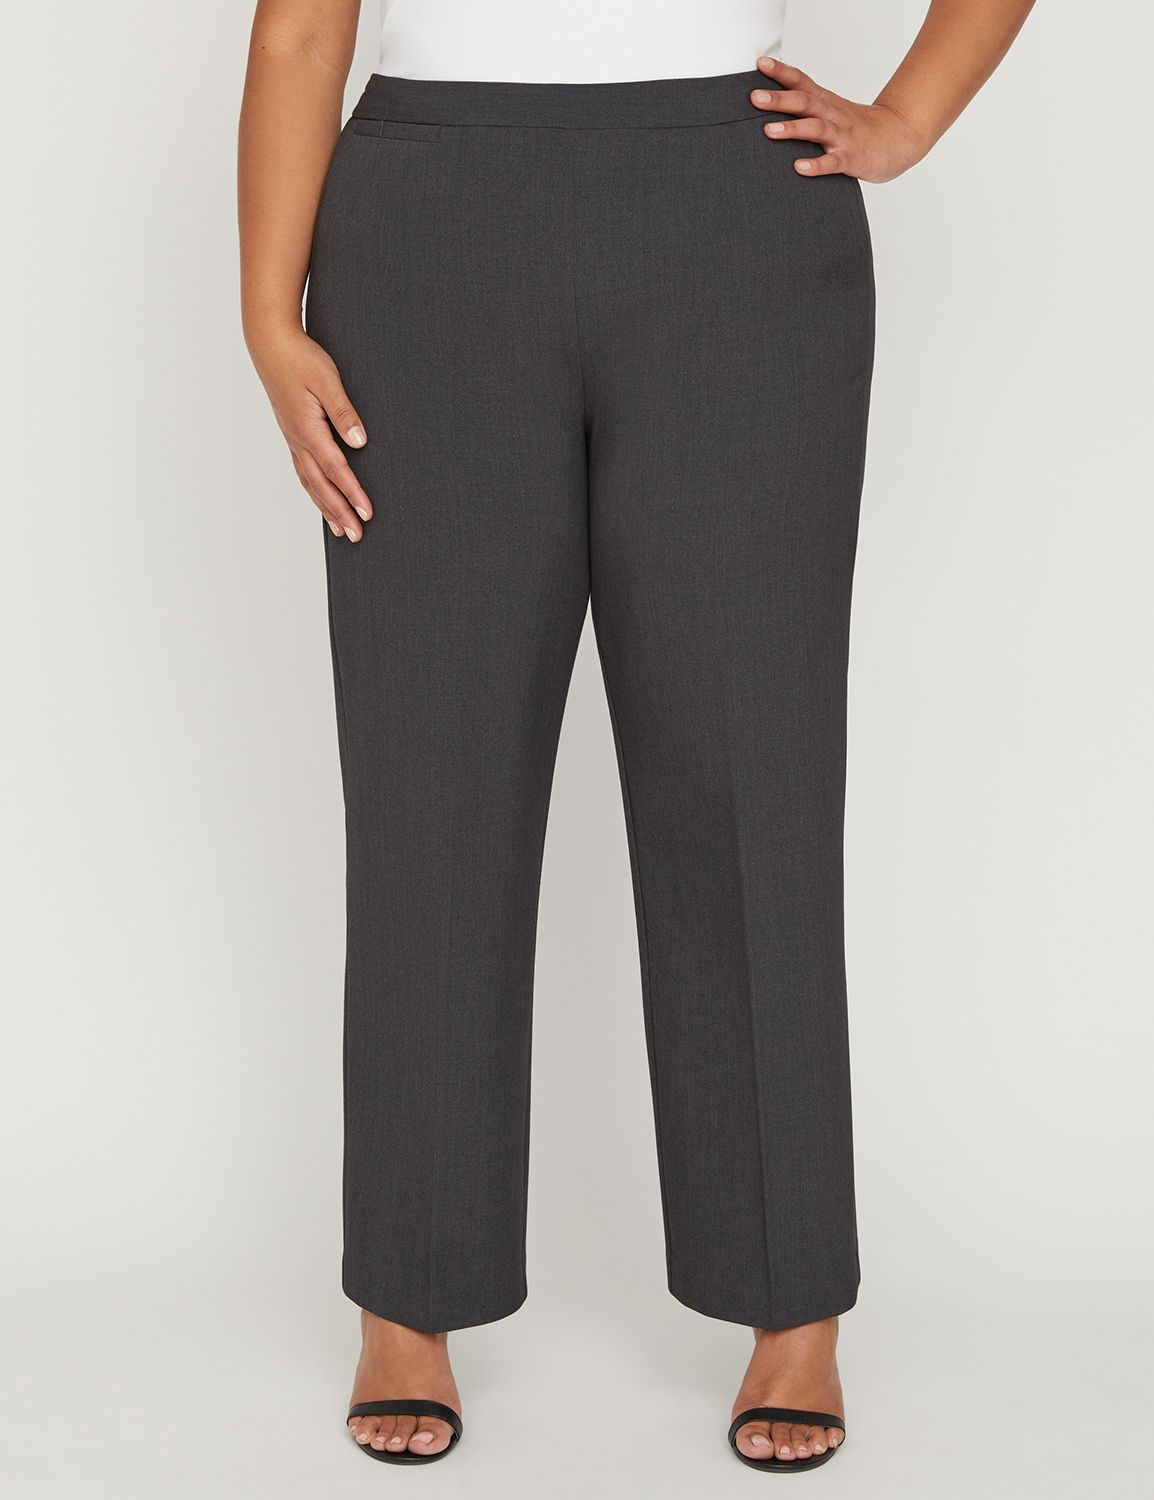 Heathered Refined Pant Heathered Refined Fit Pant MP-300044111